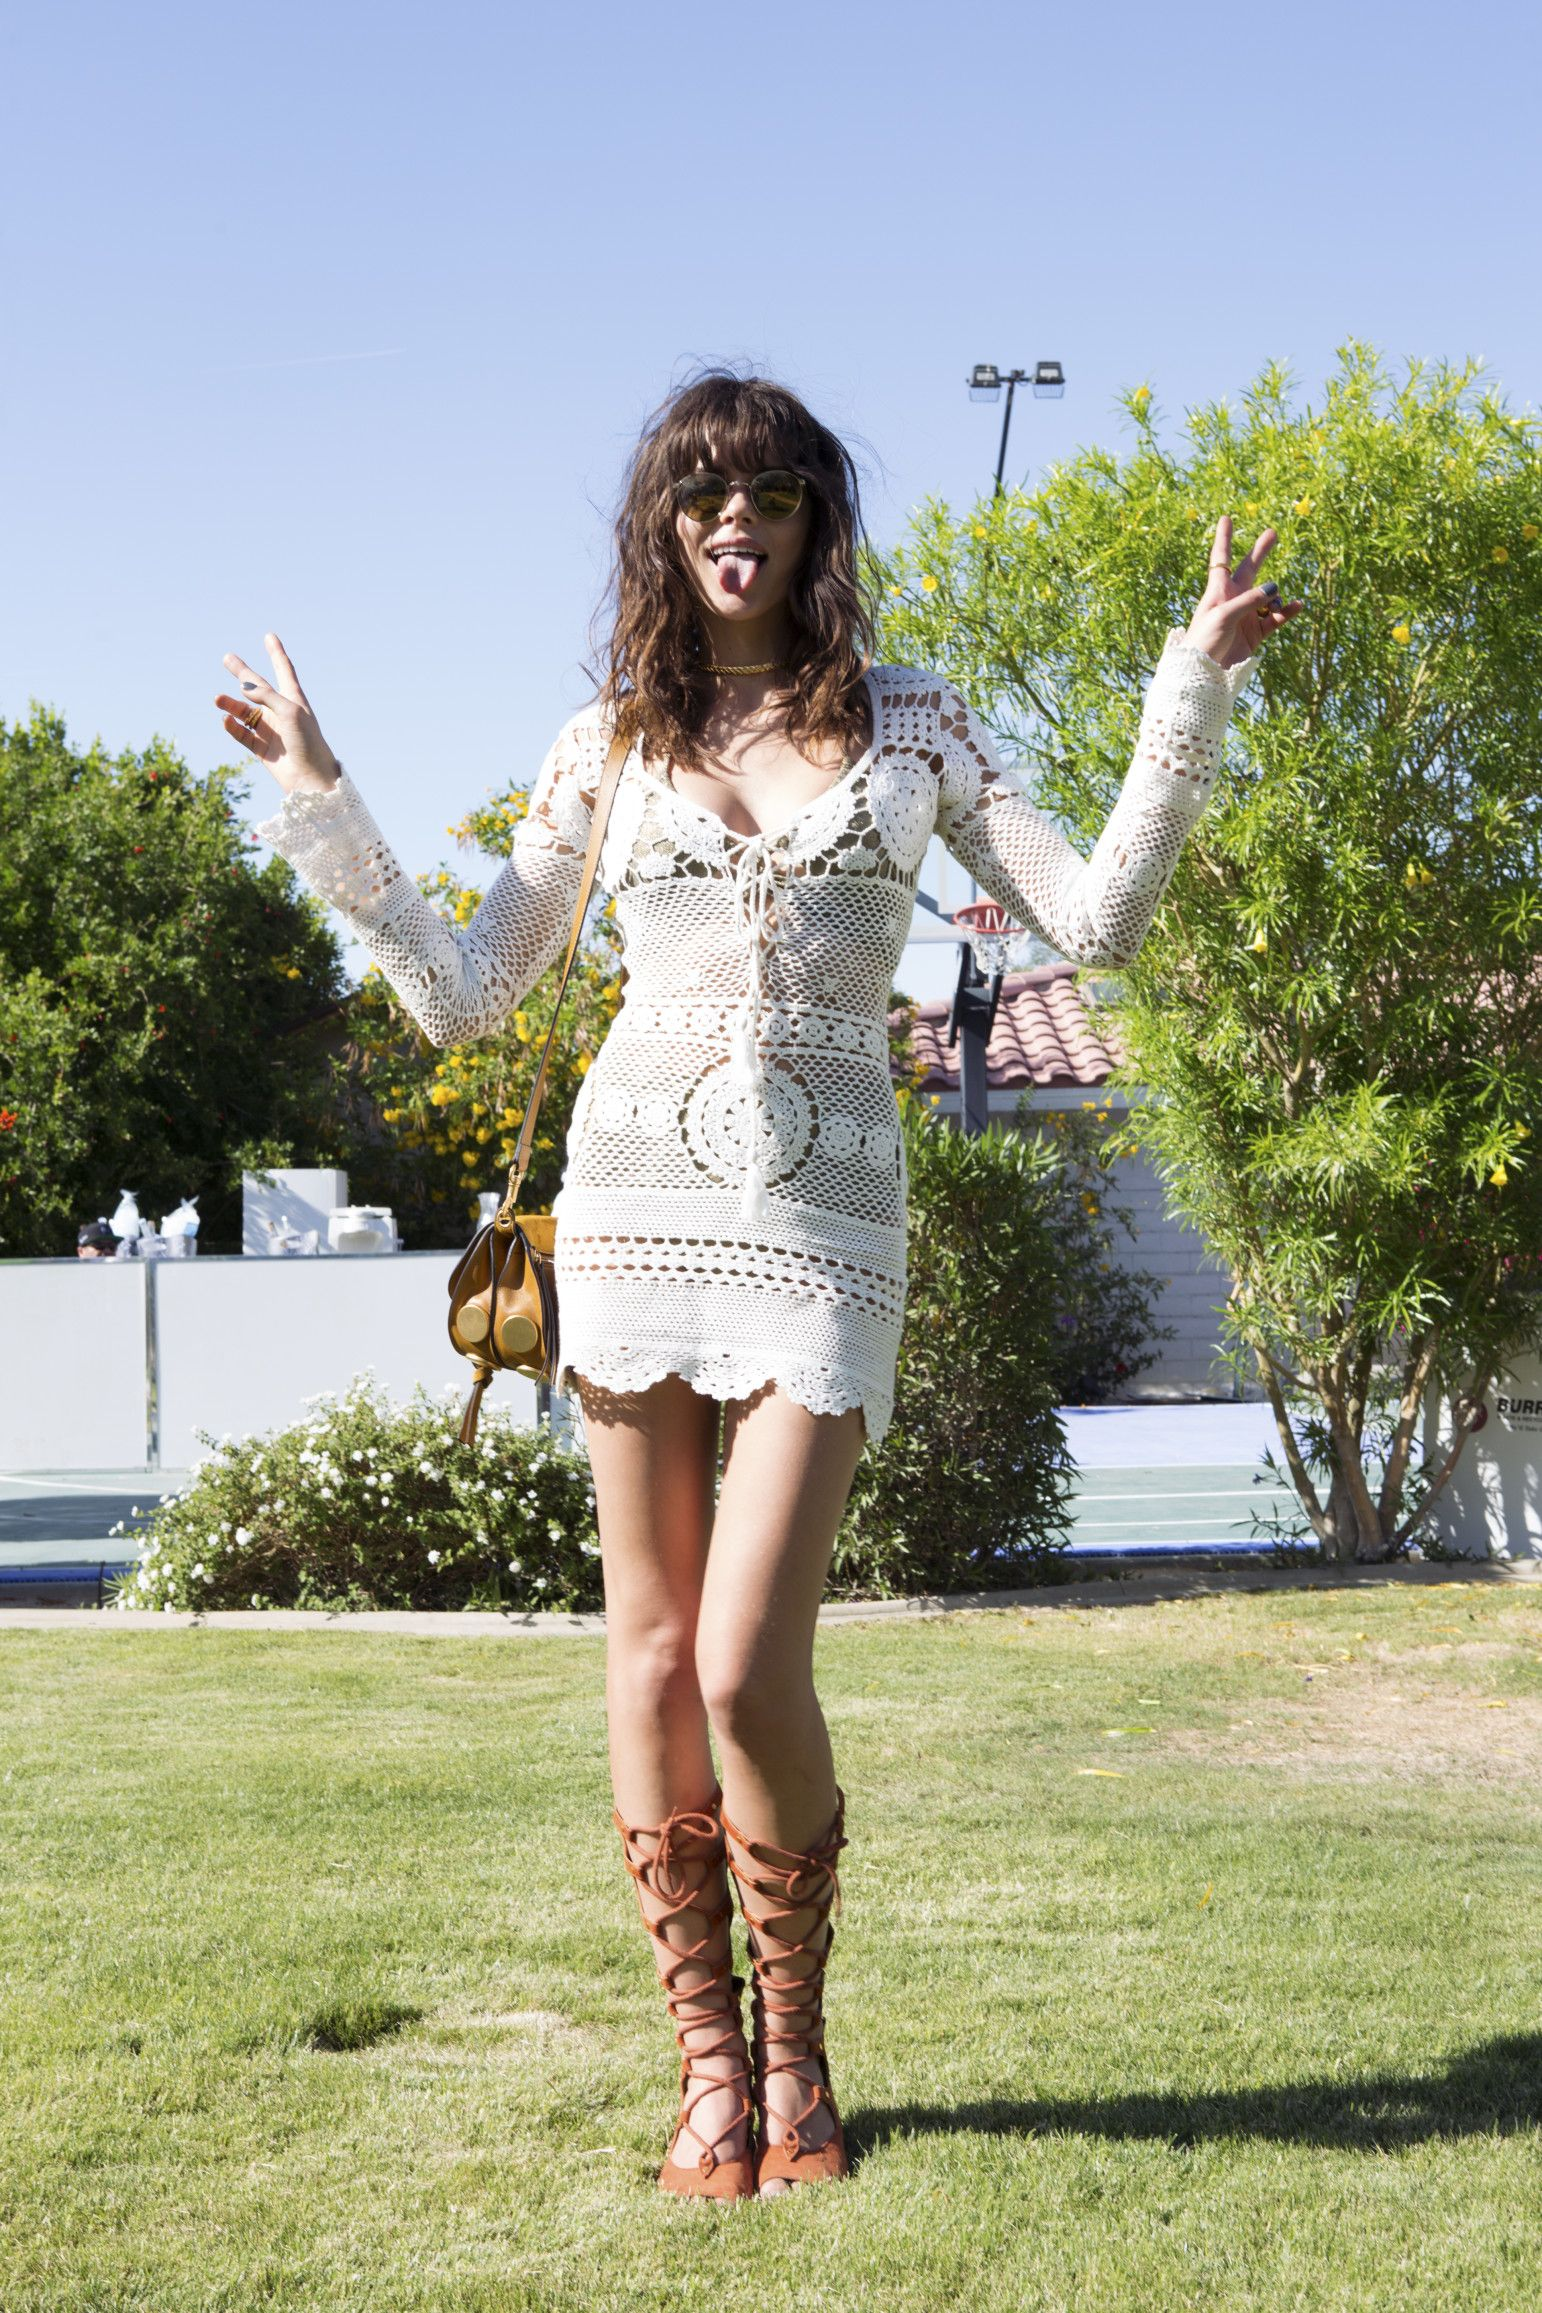 Coachella Street Style 2016: The Best Festival Fashion  - Coachella Street Style-Wmag